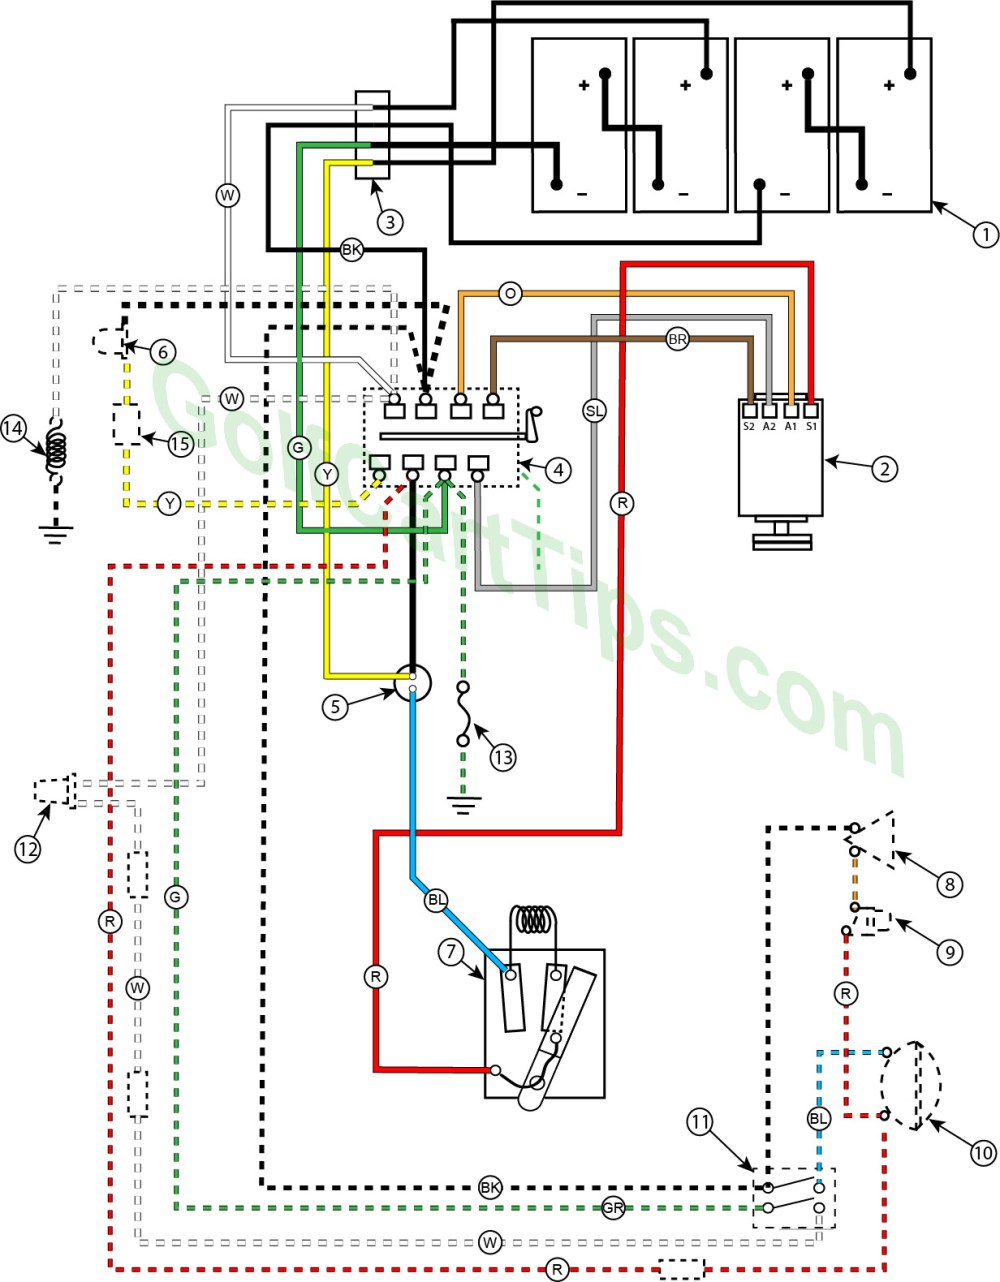 medium resolution of wiring diagram for 1955 model 732 12 golfster and 731 11 industrial 24 volt